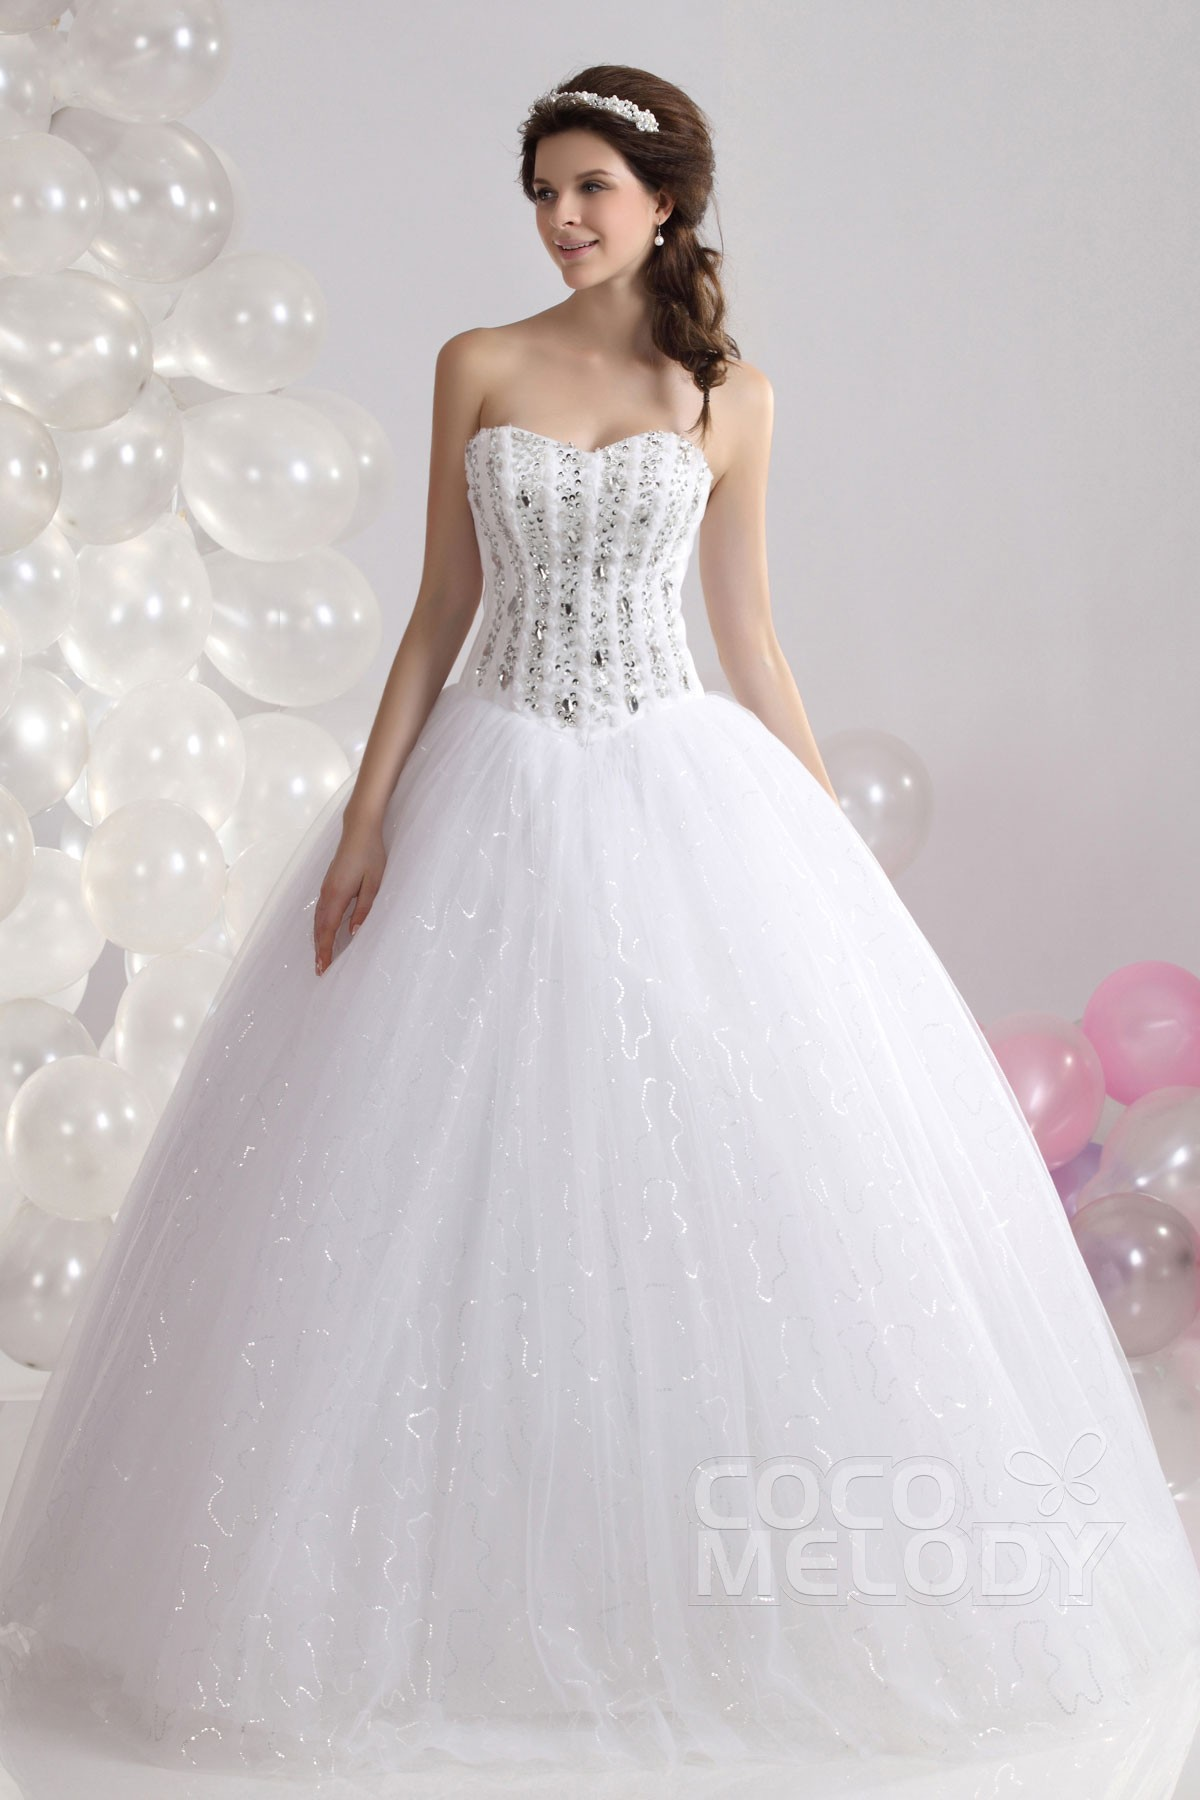 Cocomelody: Ball Gown Sweetheart Basque Floor Length Tulle Wedding ...